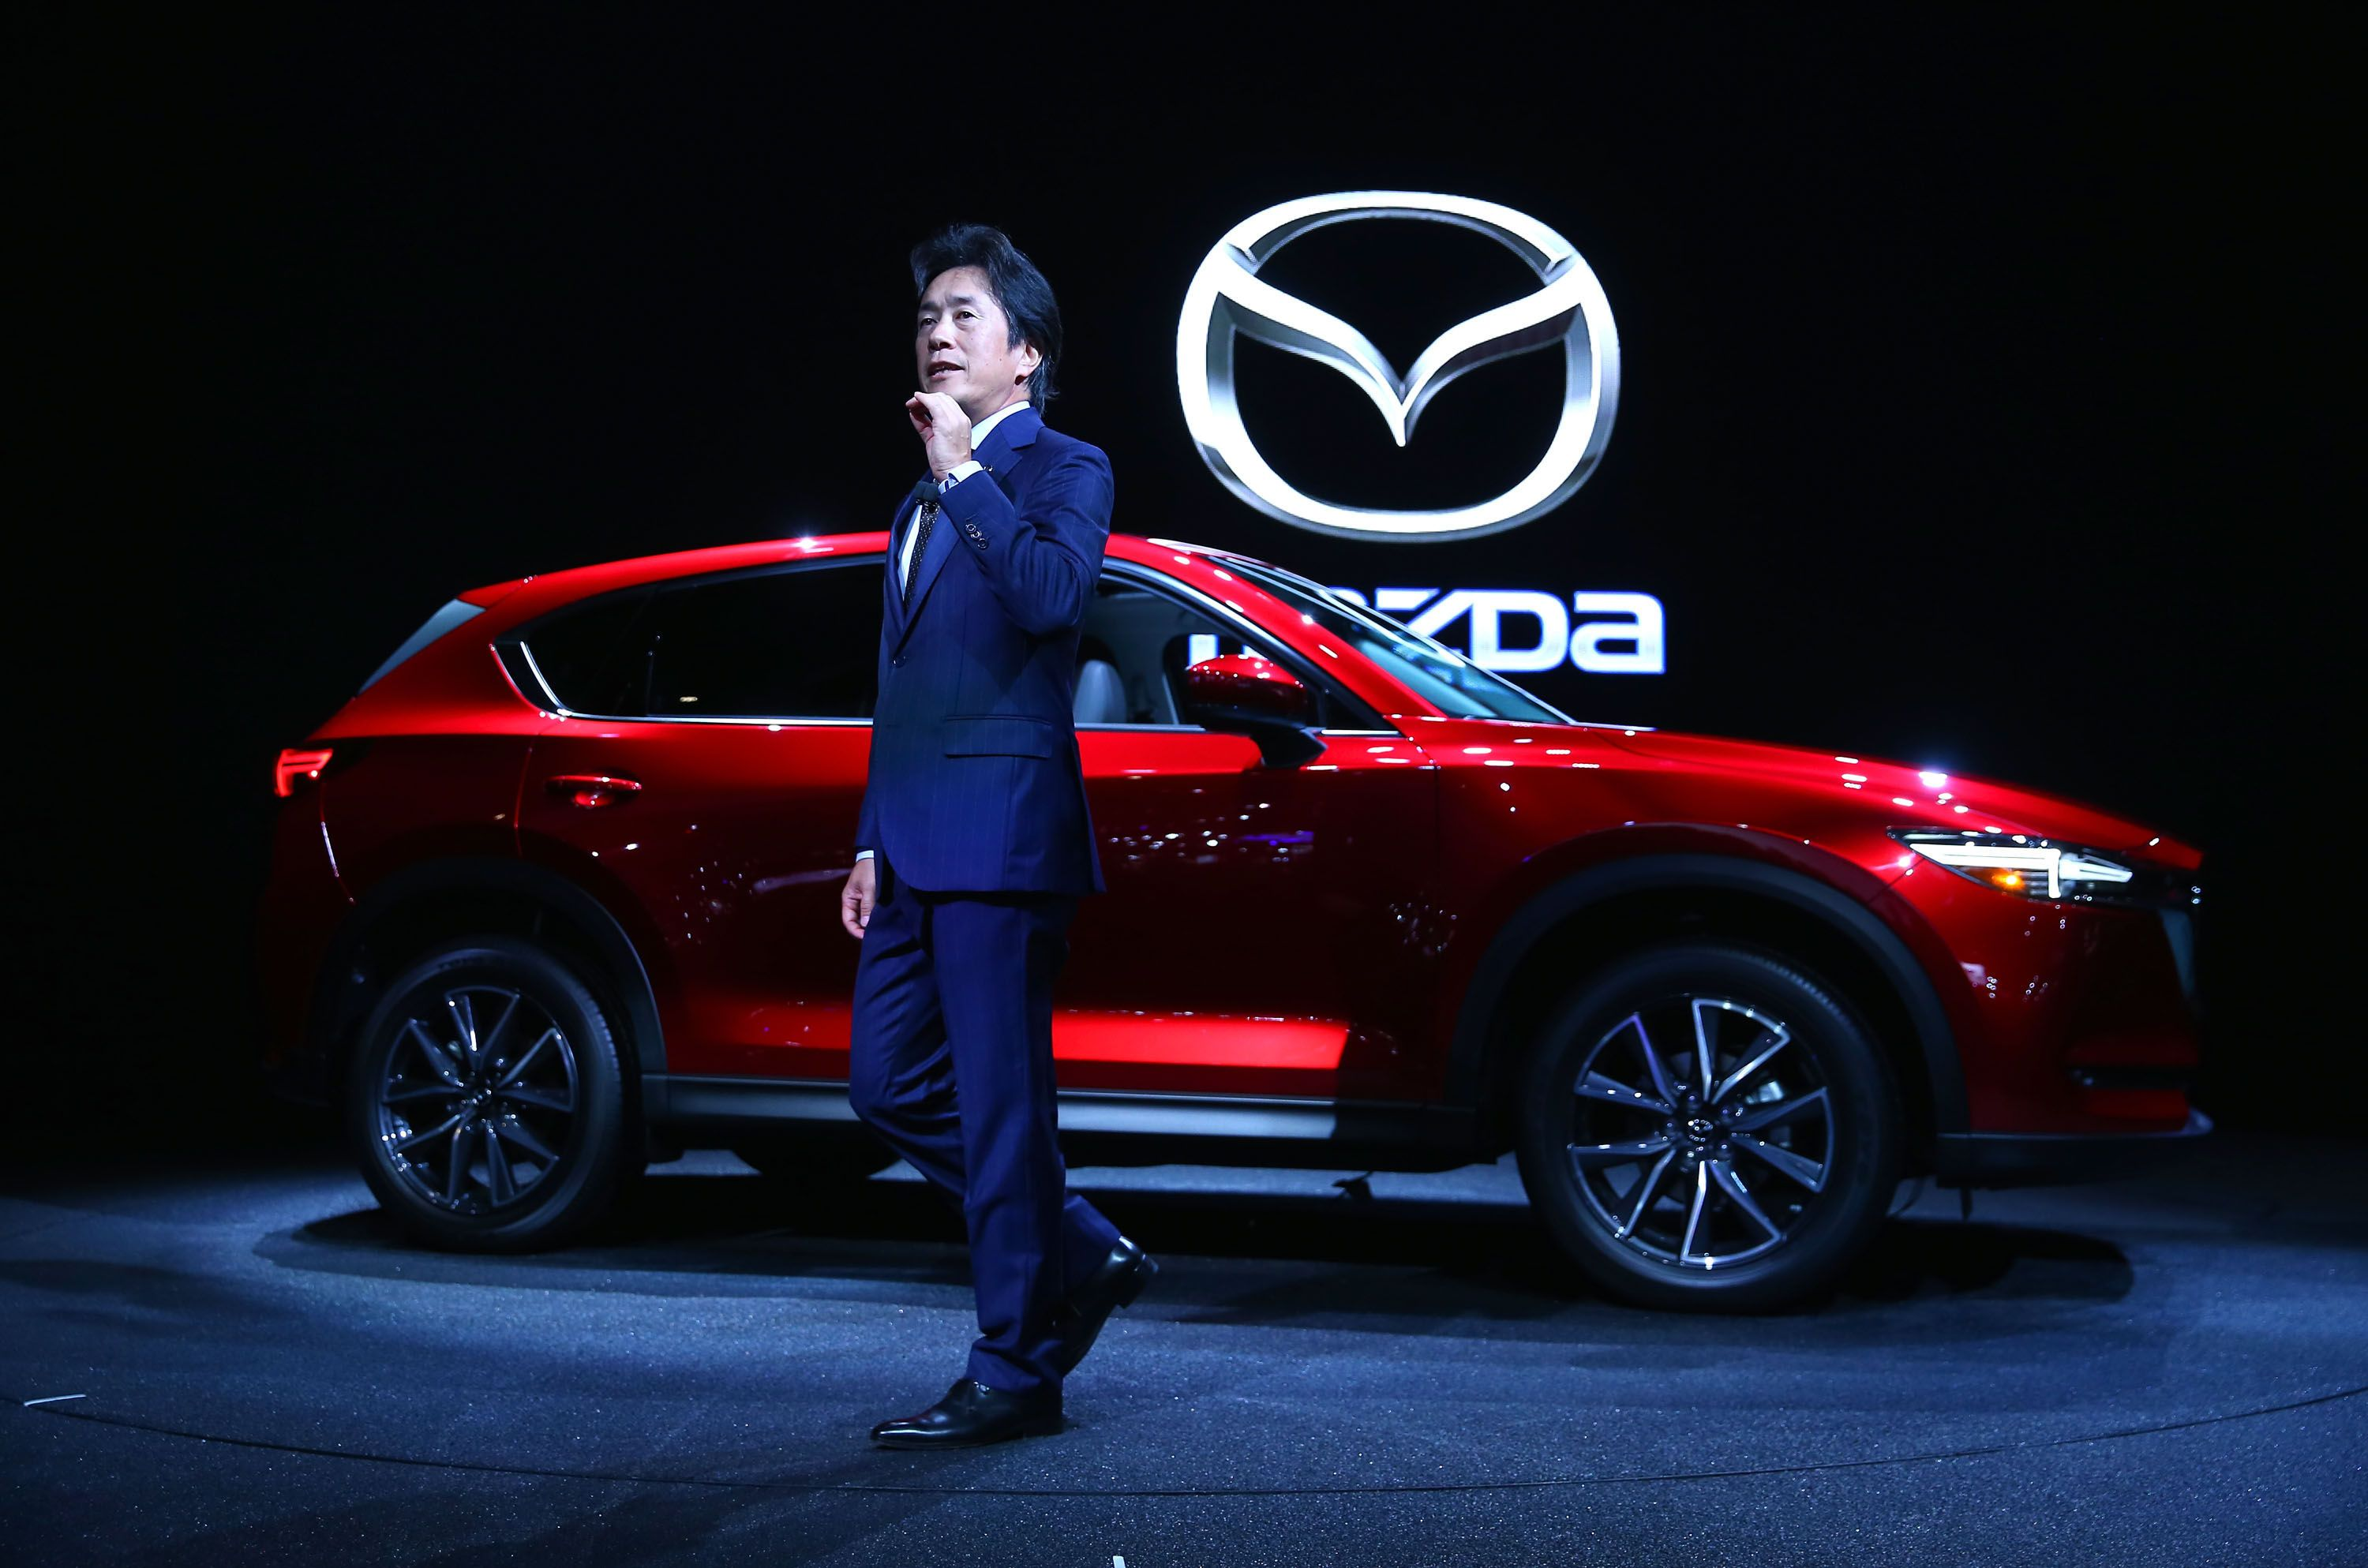 2021 Mazda Cx 5 Cx 9 And Mazda6 Get All New Carbon Editions With Exclusive Features Mazda 6 Mazda Edition